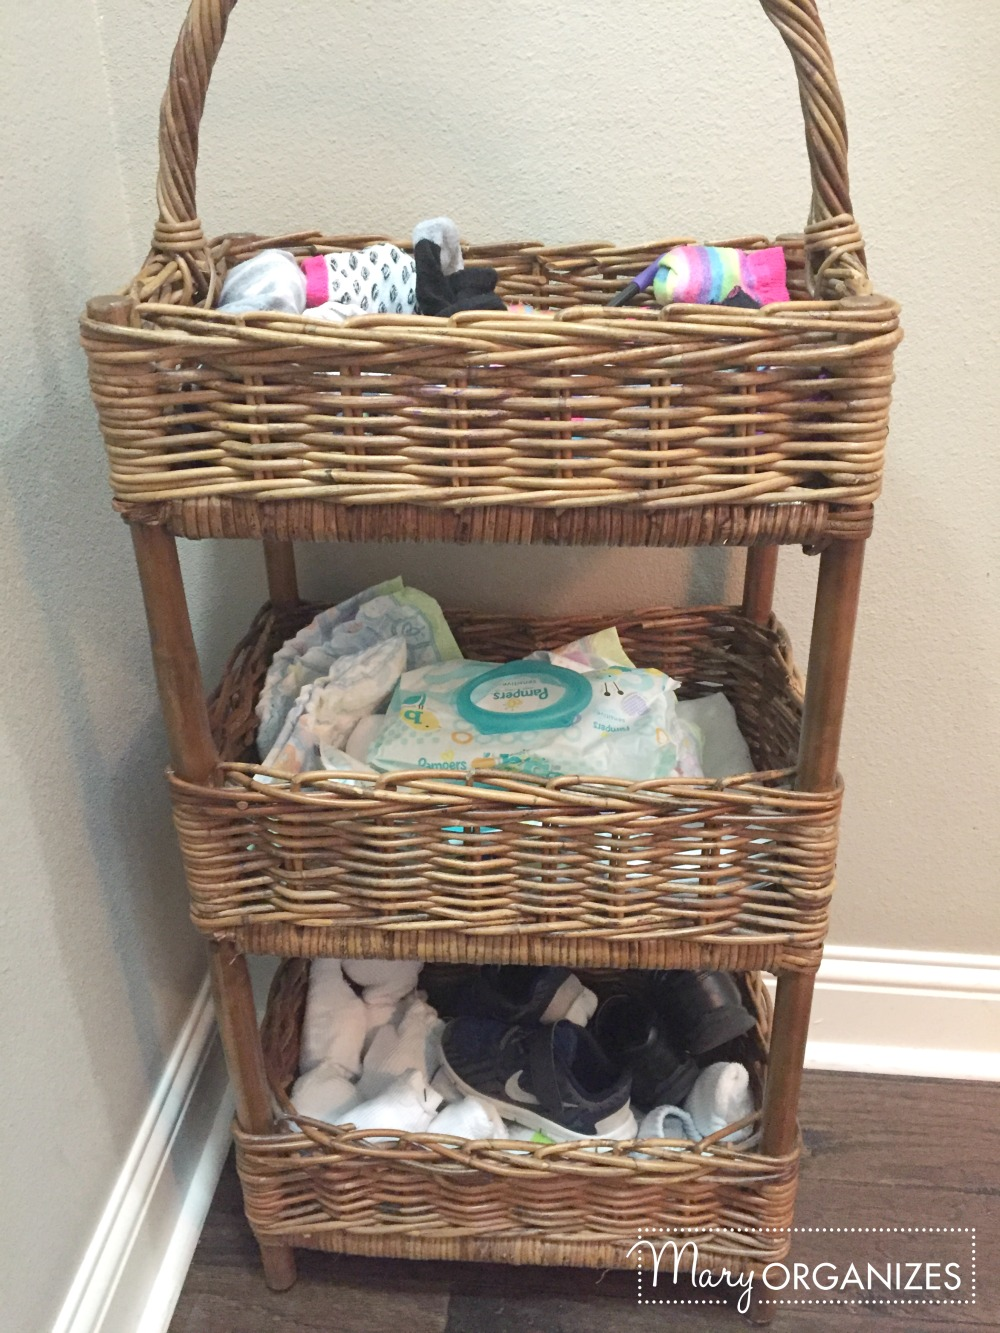 Mary organizes - mud area - organizers for socks toddler shoes and diapers